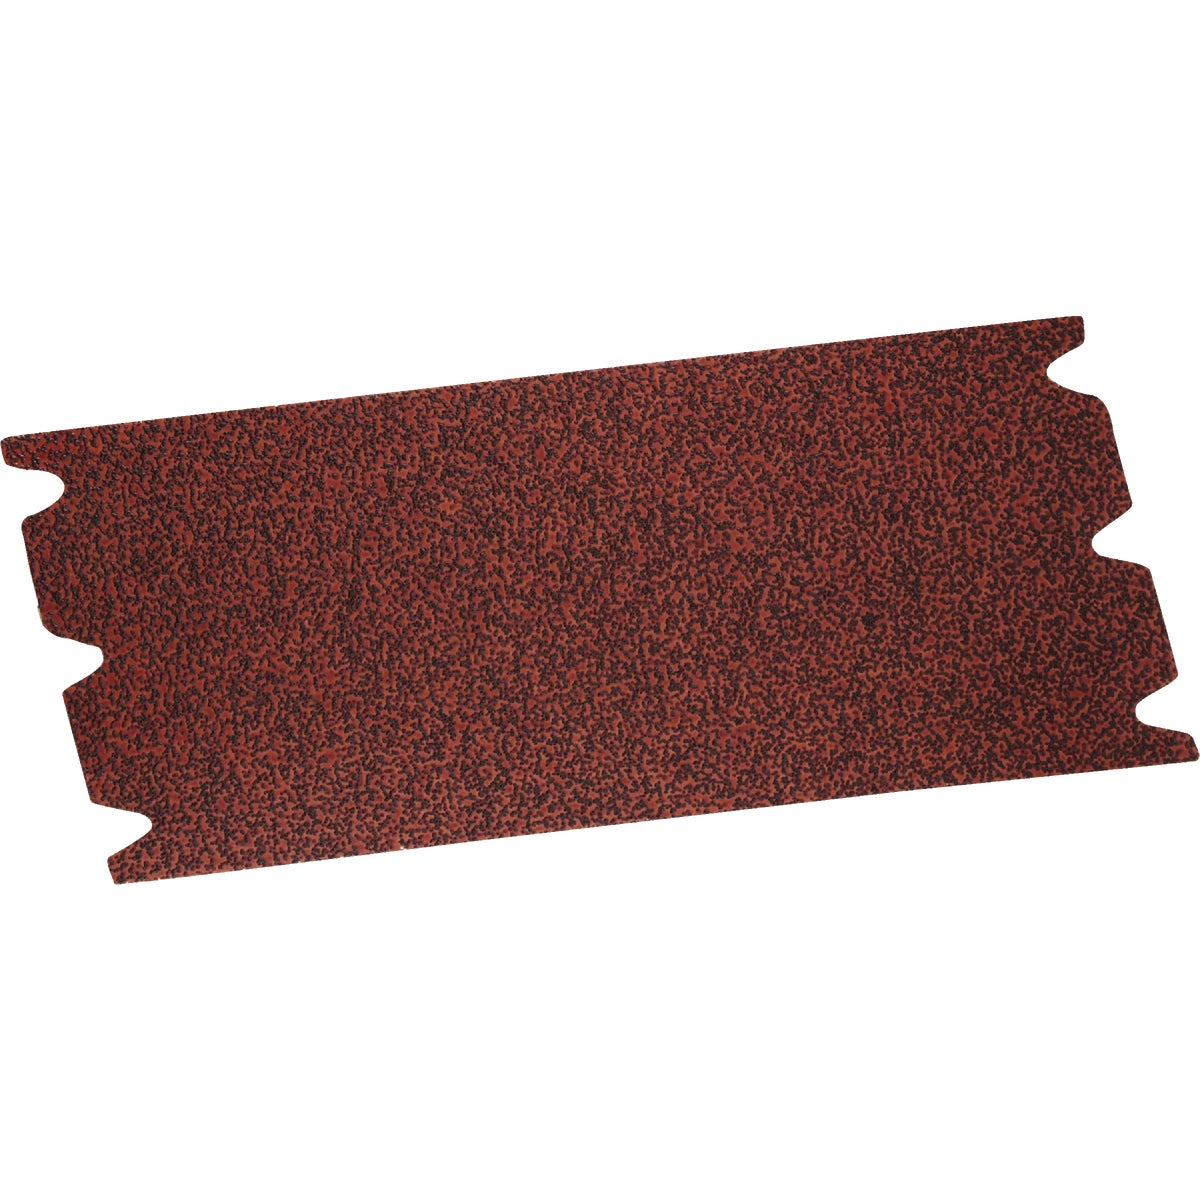 60G FLOOR SANDING SHEET - 002-808060 by Virginia Abrasives